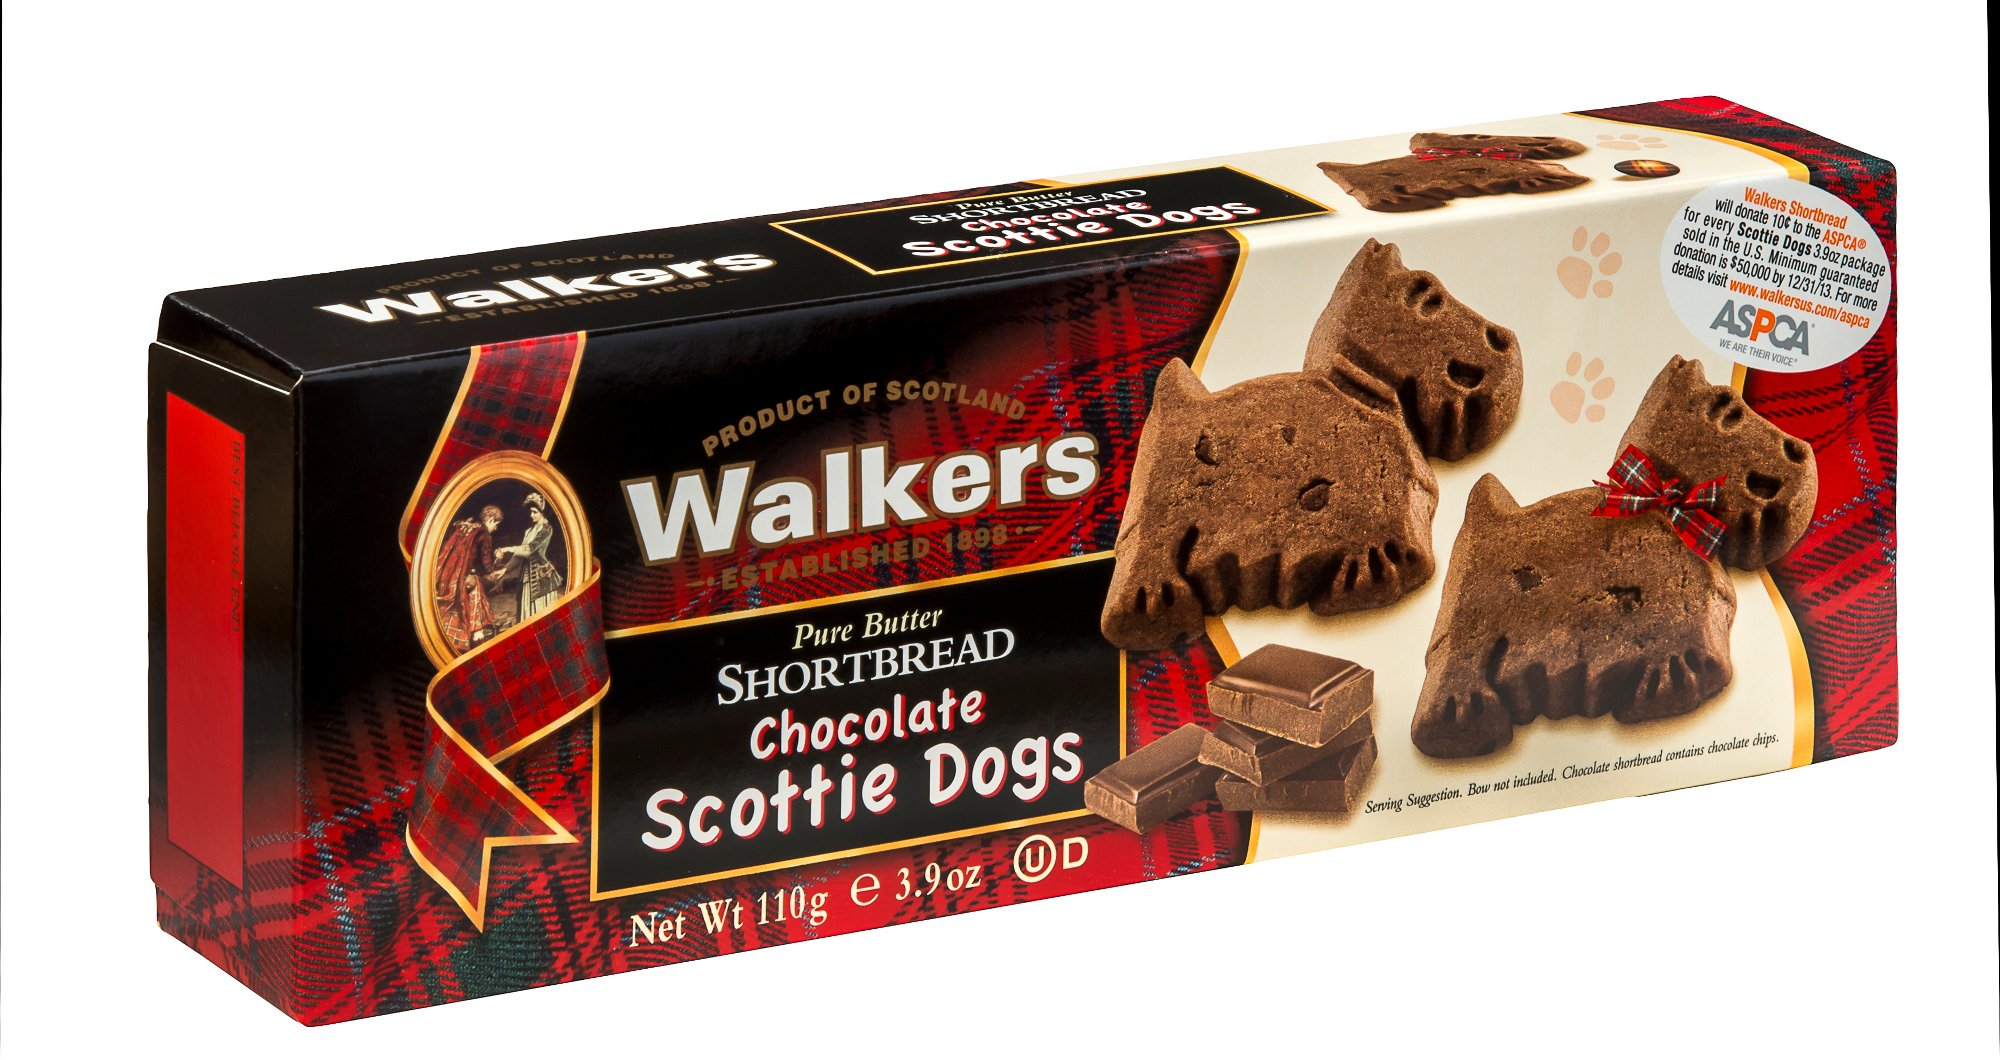 Walkers Shortbread Chocolate Scottie Dogs Shortbread, 3.9 Ounce(Pack of 12)